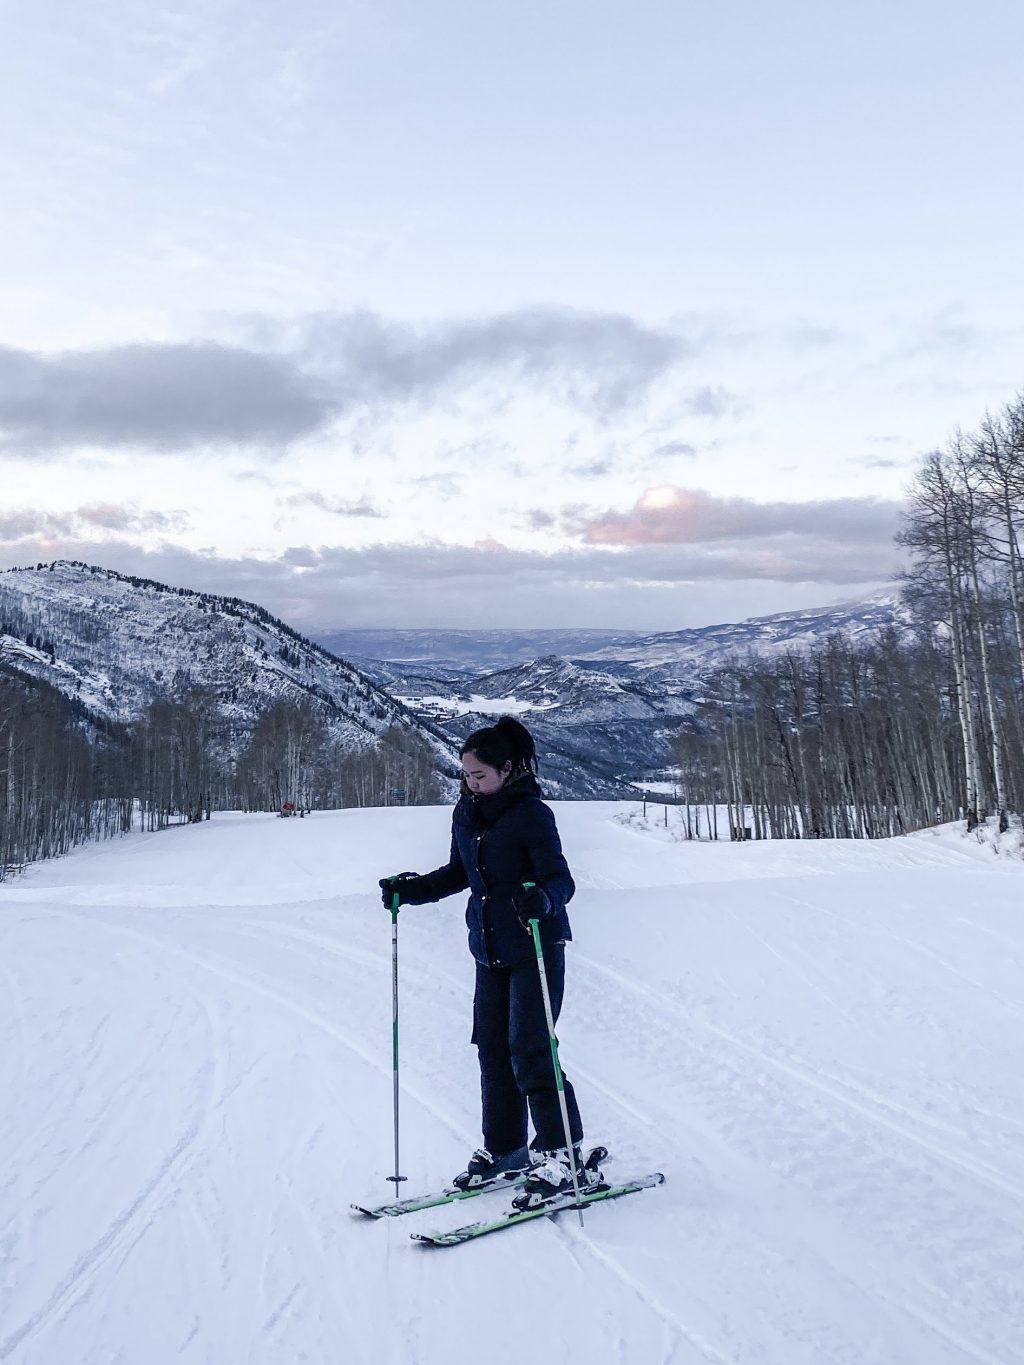 Putri skis on top of a mountain in Aspen, Colo., in last November. Last Thanksgiving, Putri took a ski trip with her friends.